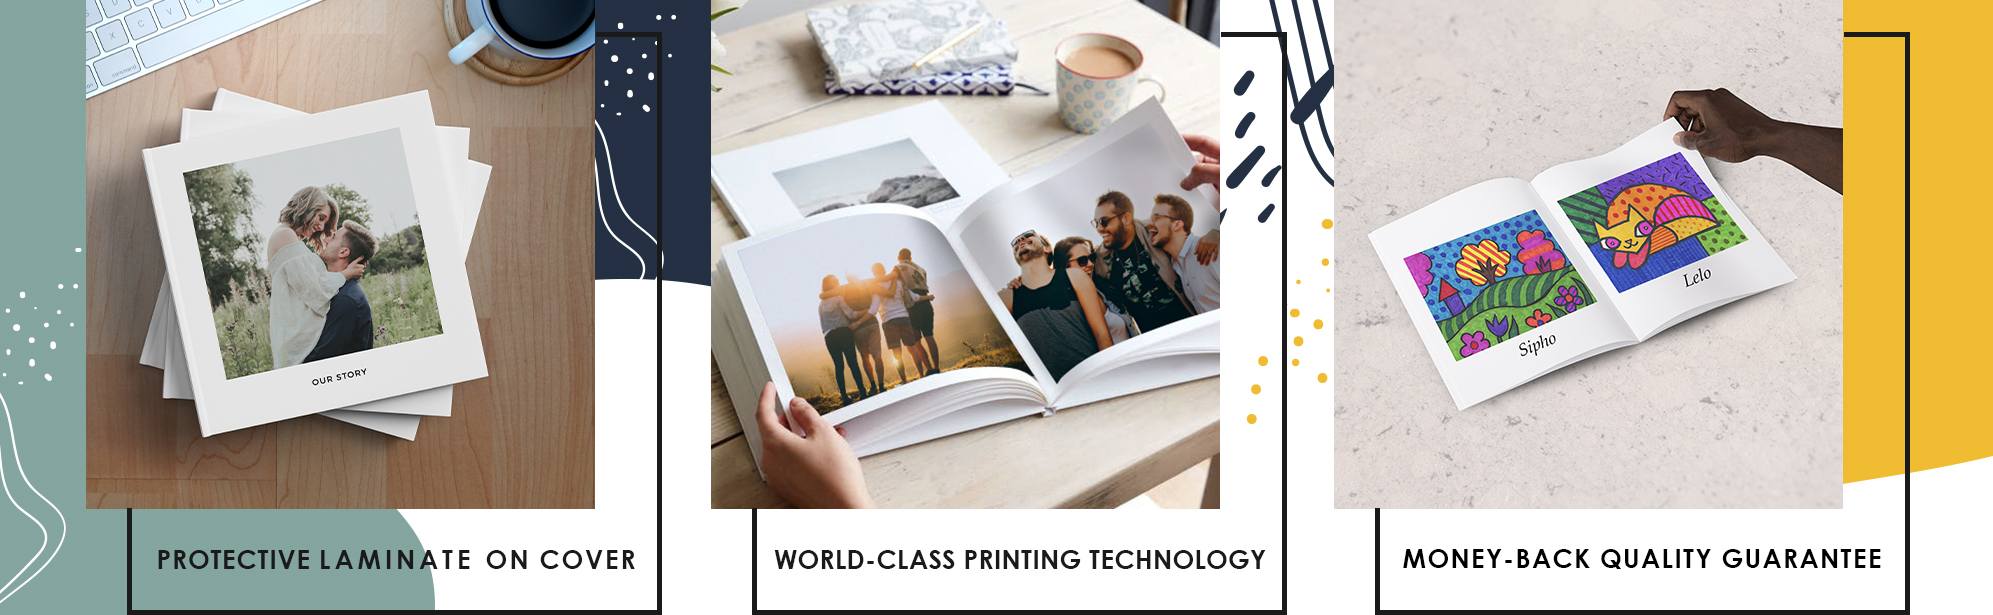 Protective Laminate on cover | World-Class Printing Technology | Money-back Qaulity Guarantee